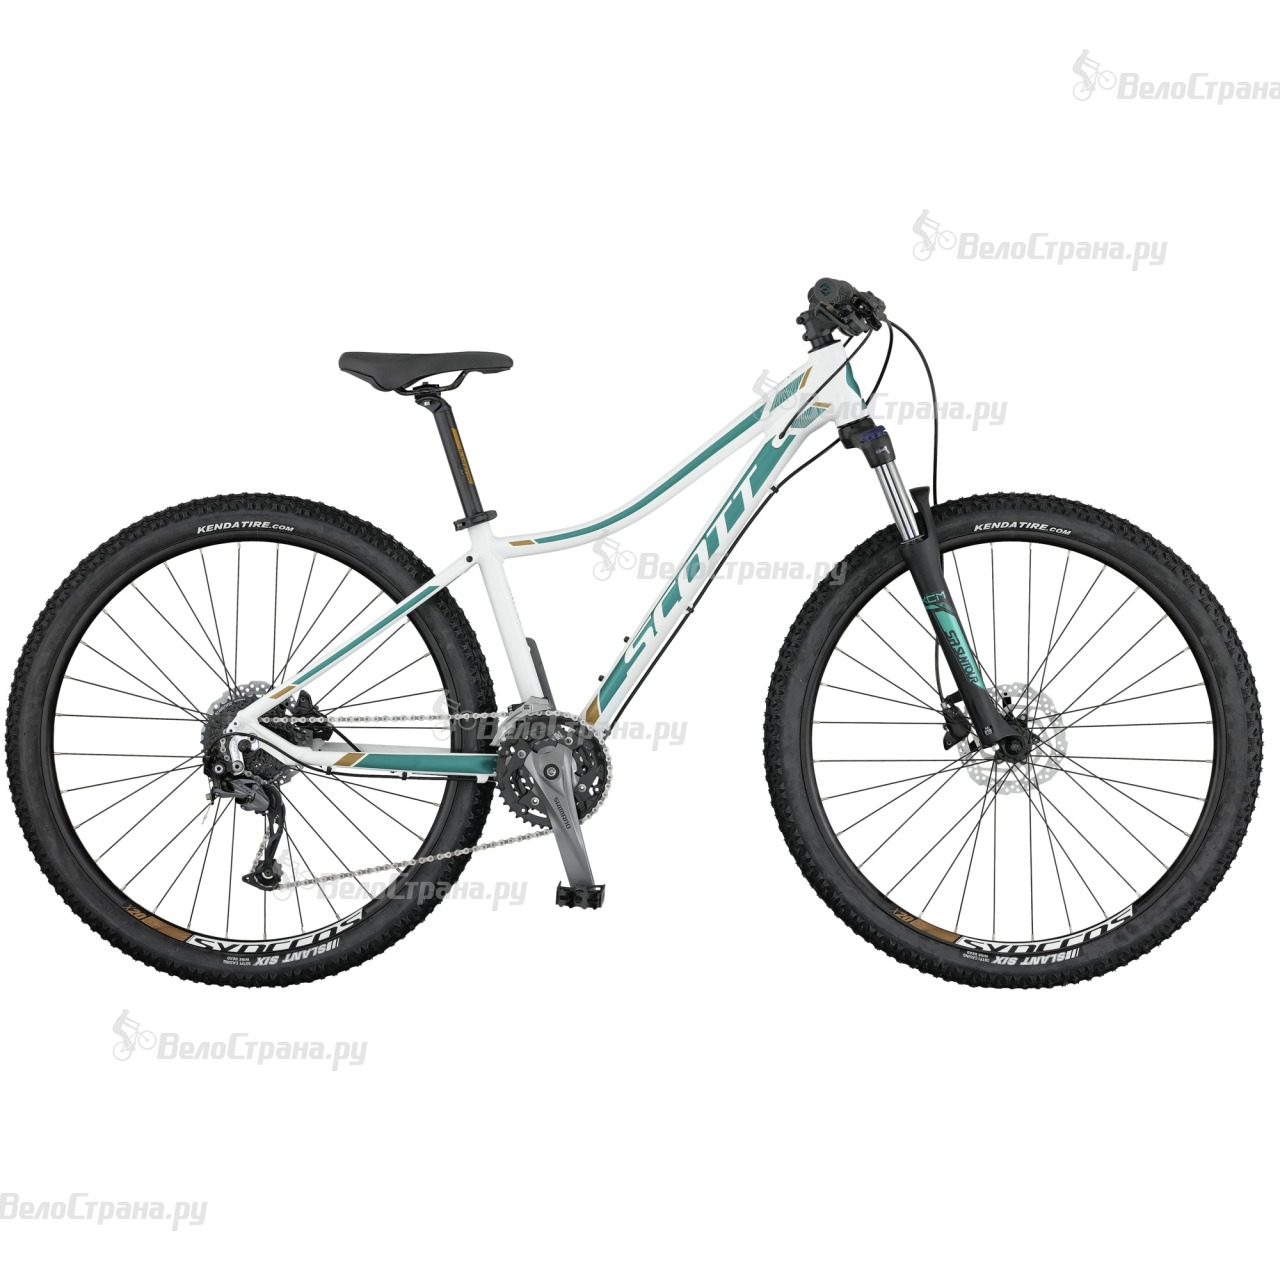 Велосипед Scott Contessa 720 (2017) велосипед scott contessa solace 15 compact 2015